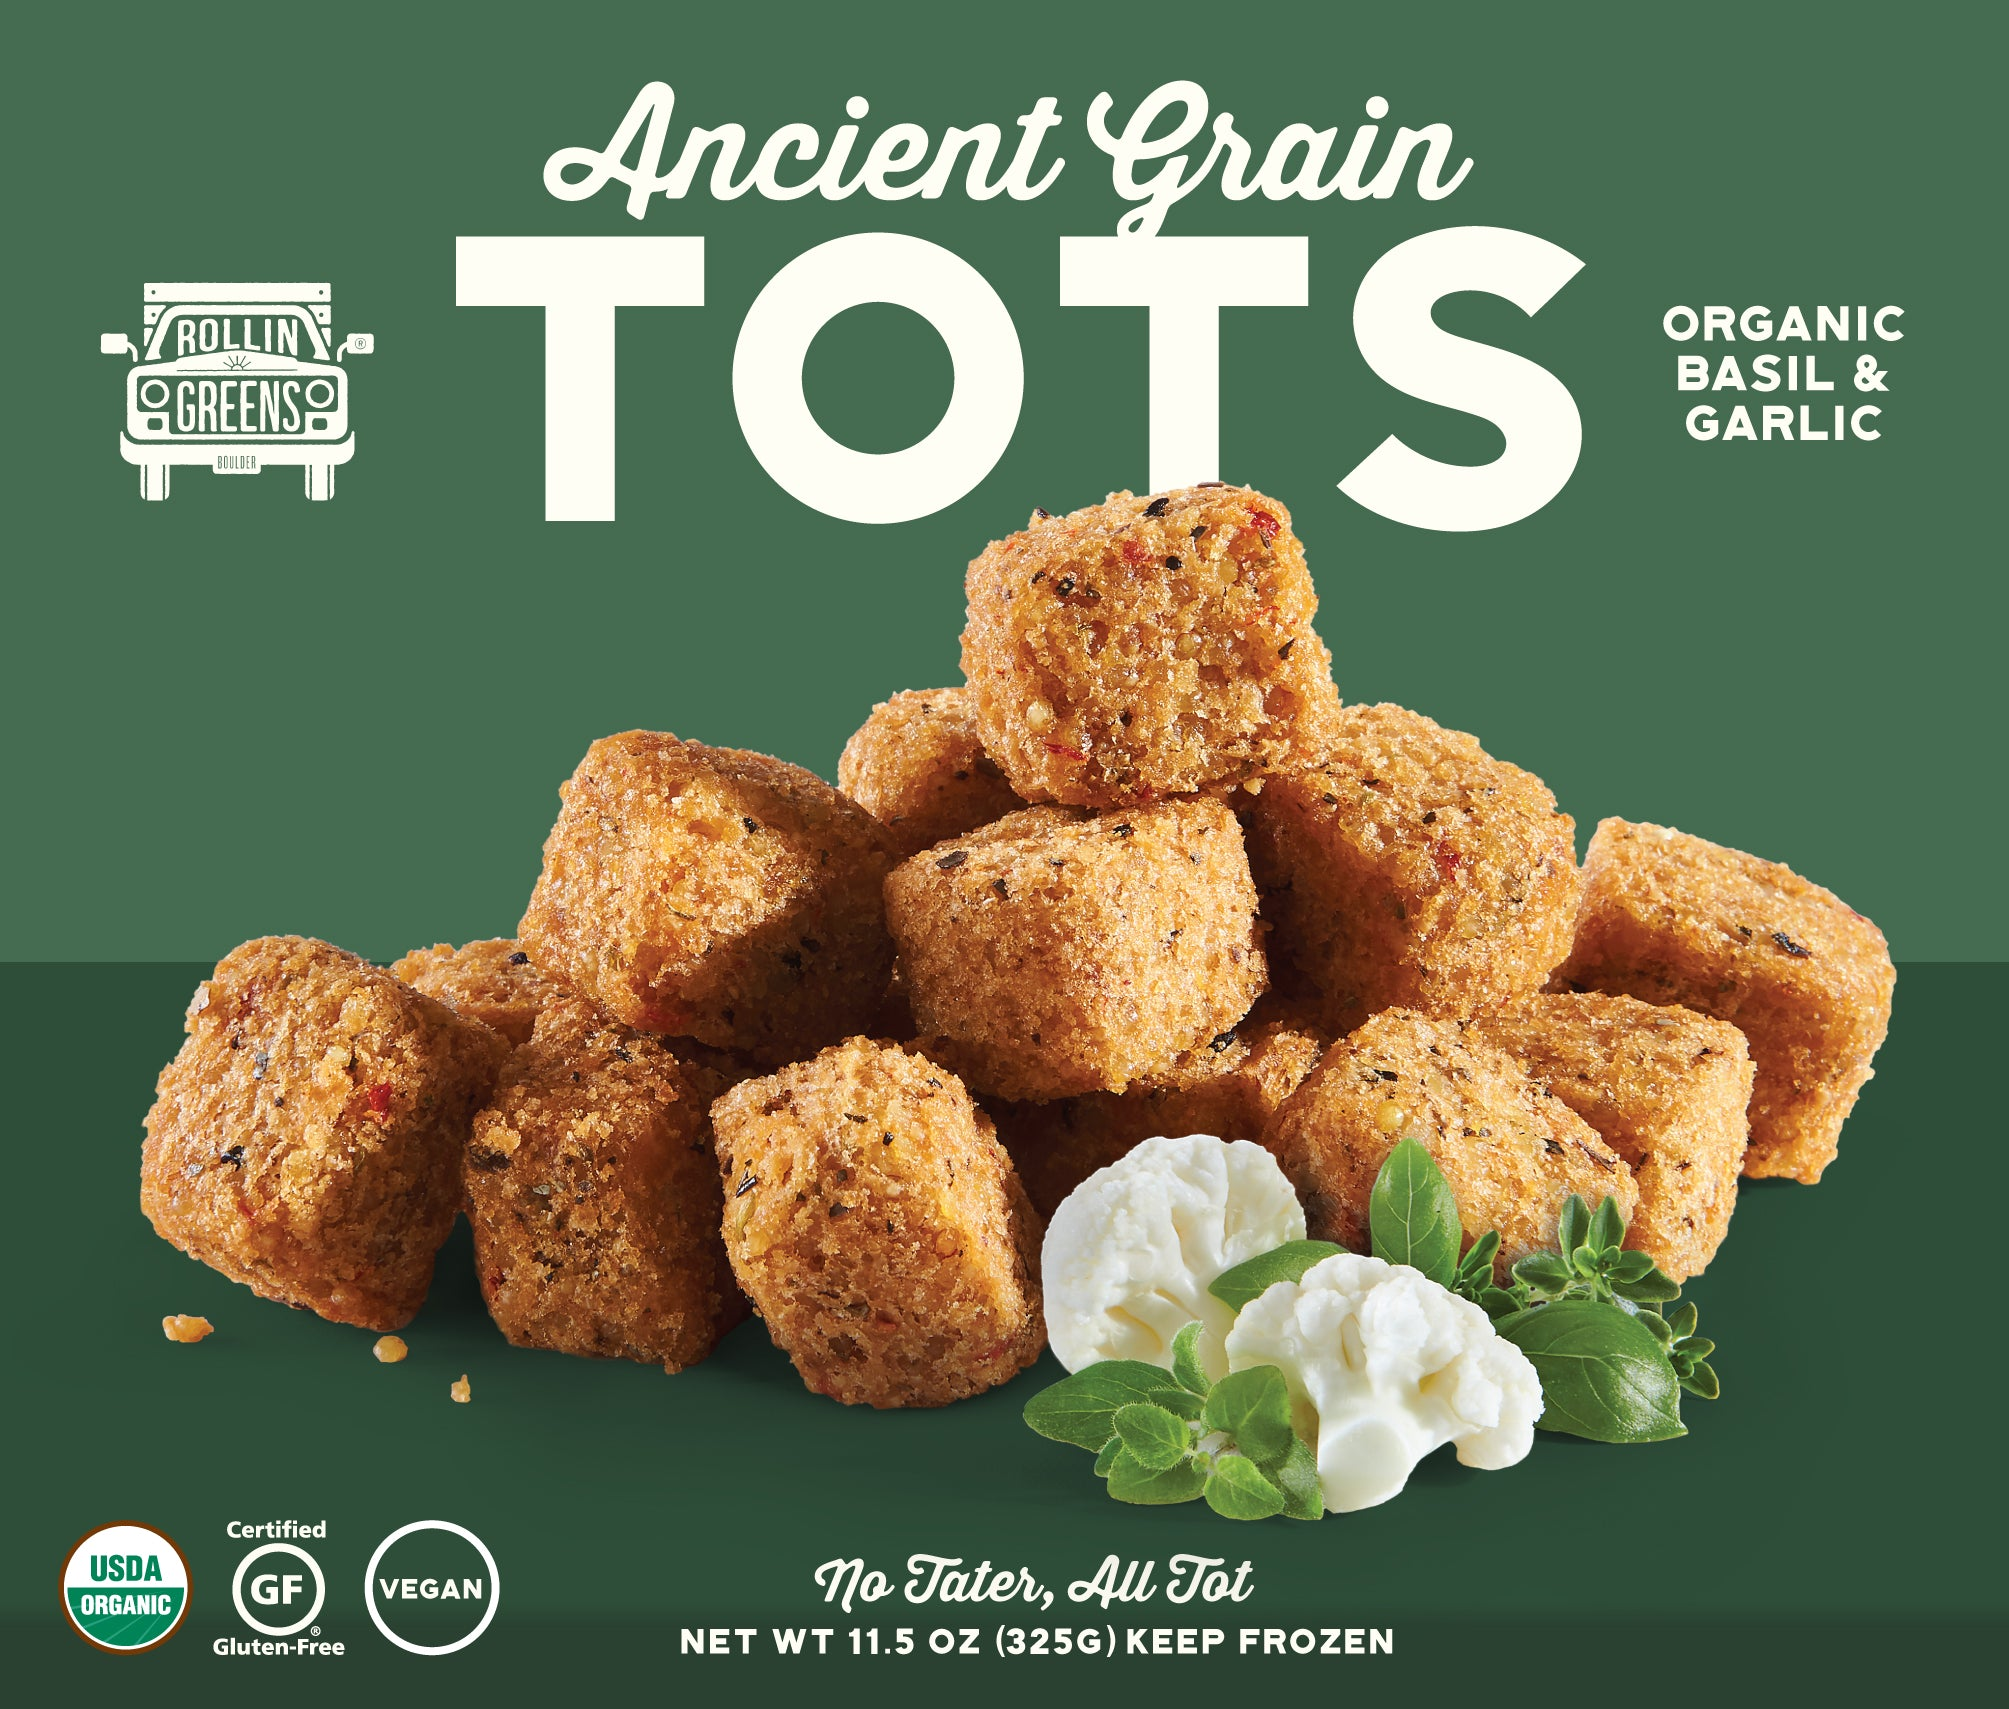 Organic Basil & Garlic Ancient Grain Tots